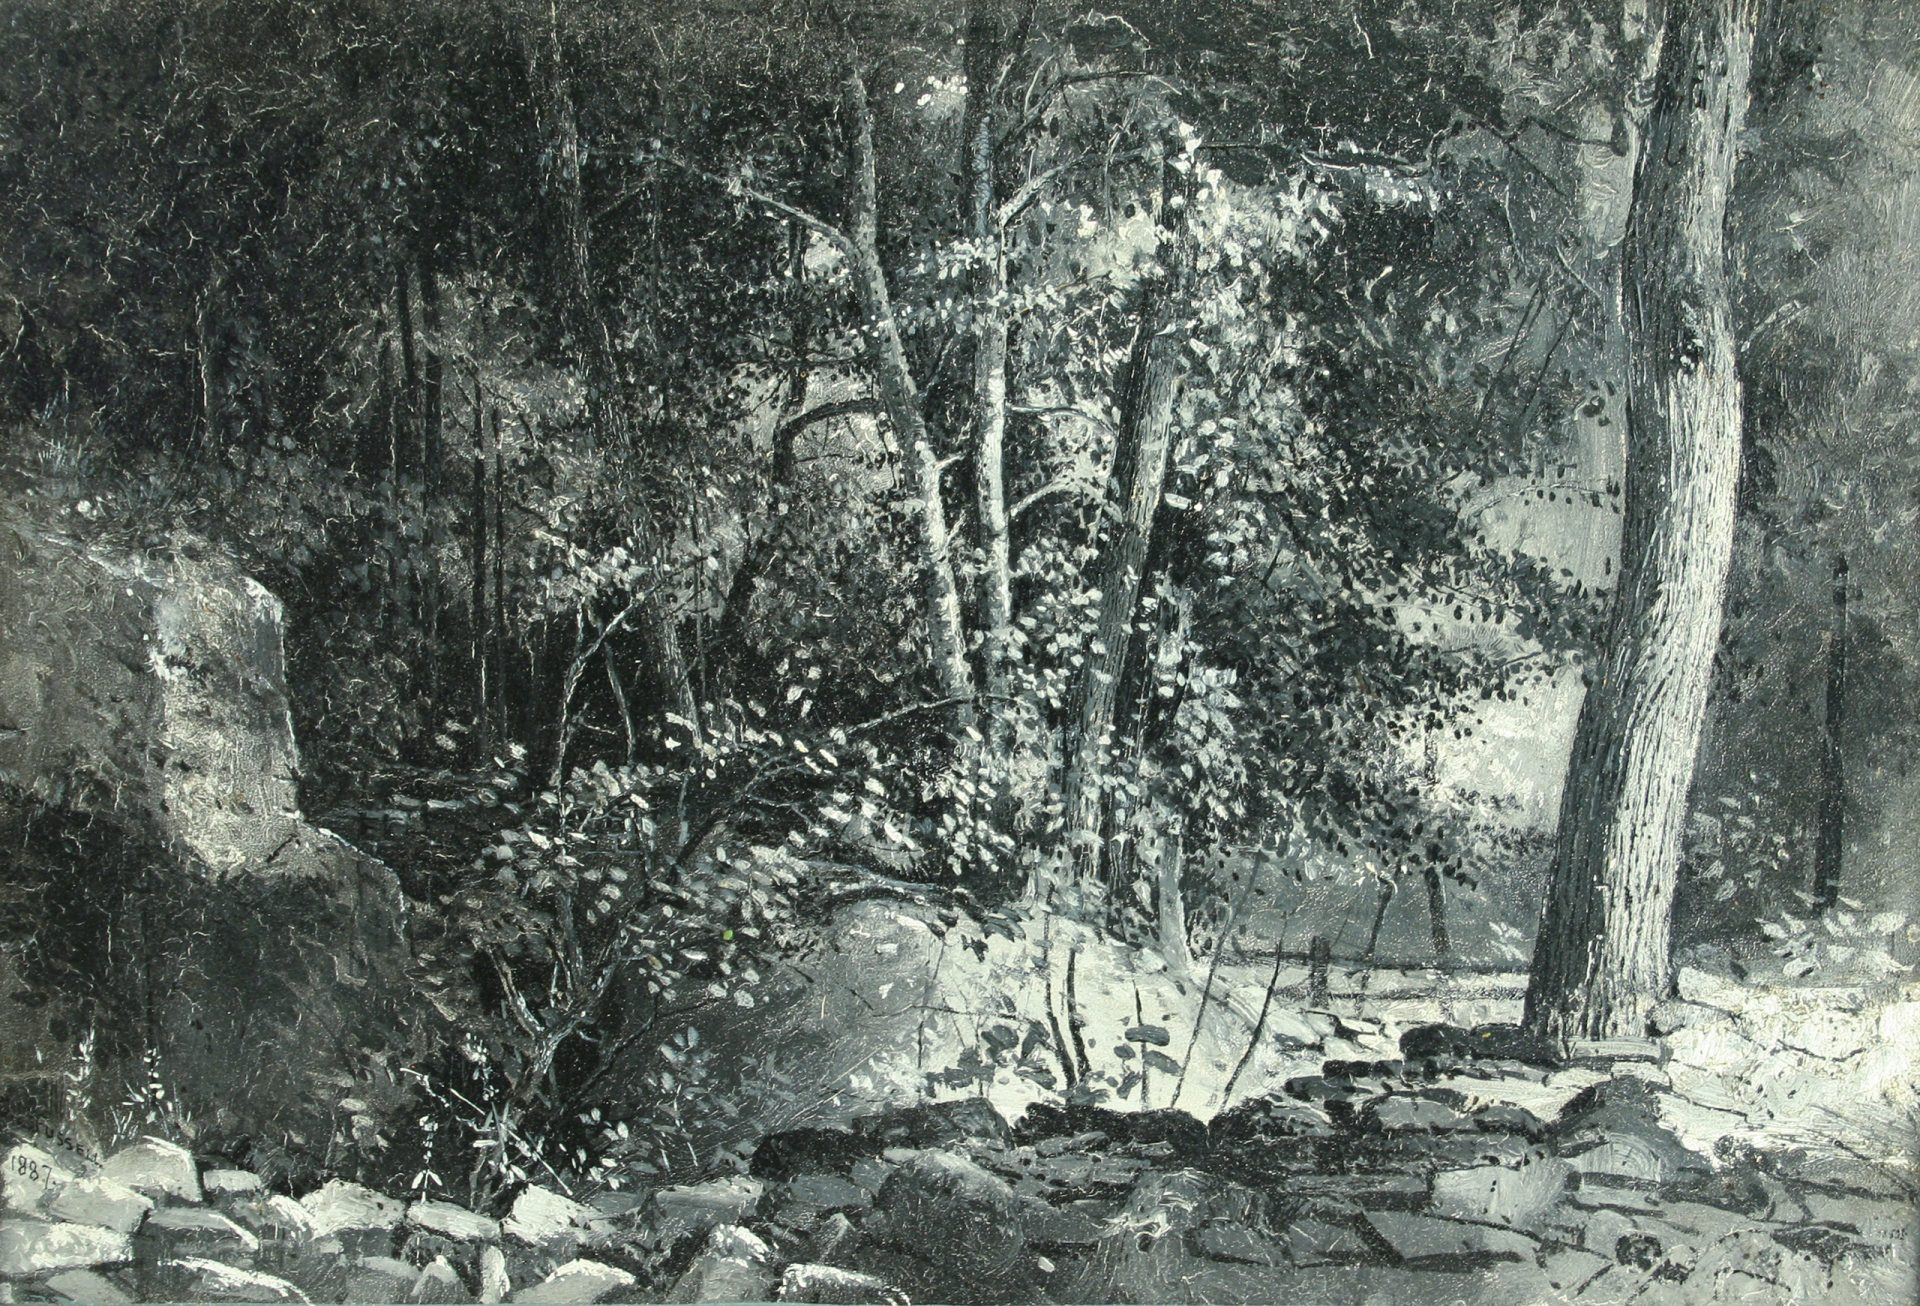 Rocky Riverbed in the Woods (Charles Lewis Fussell)